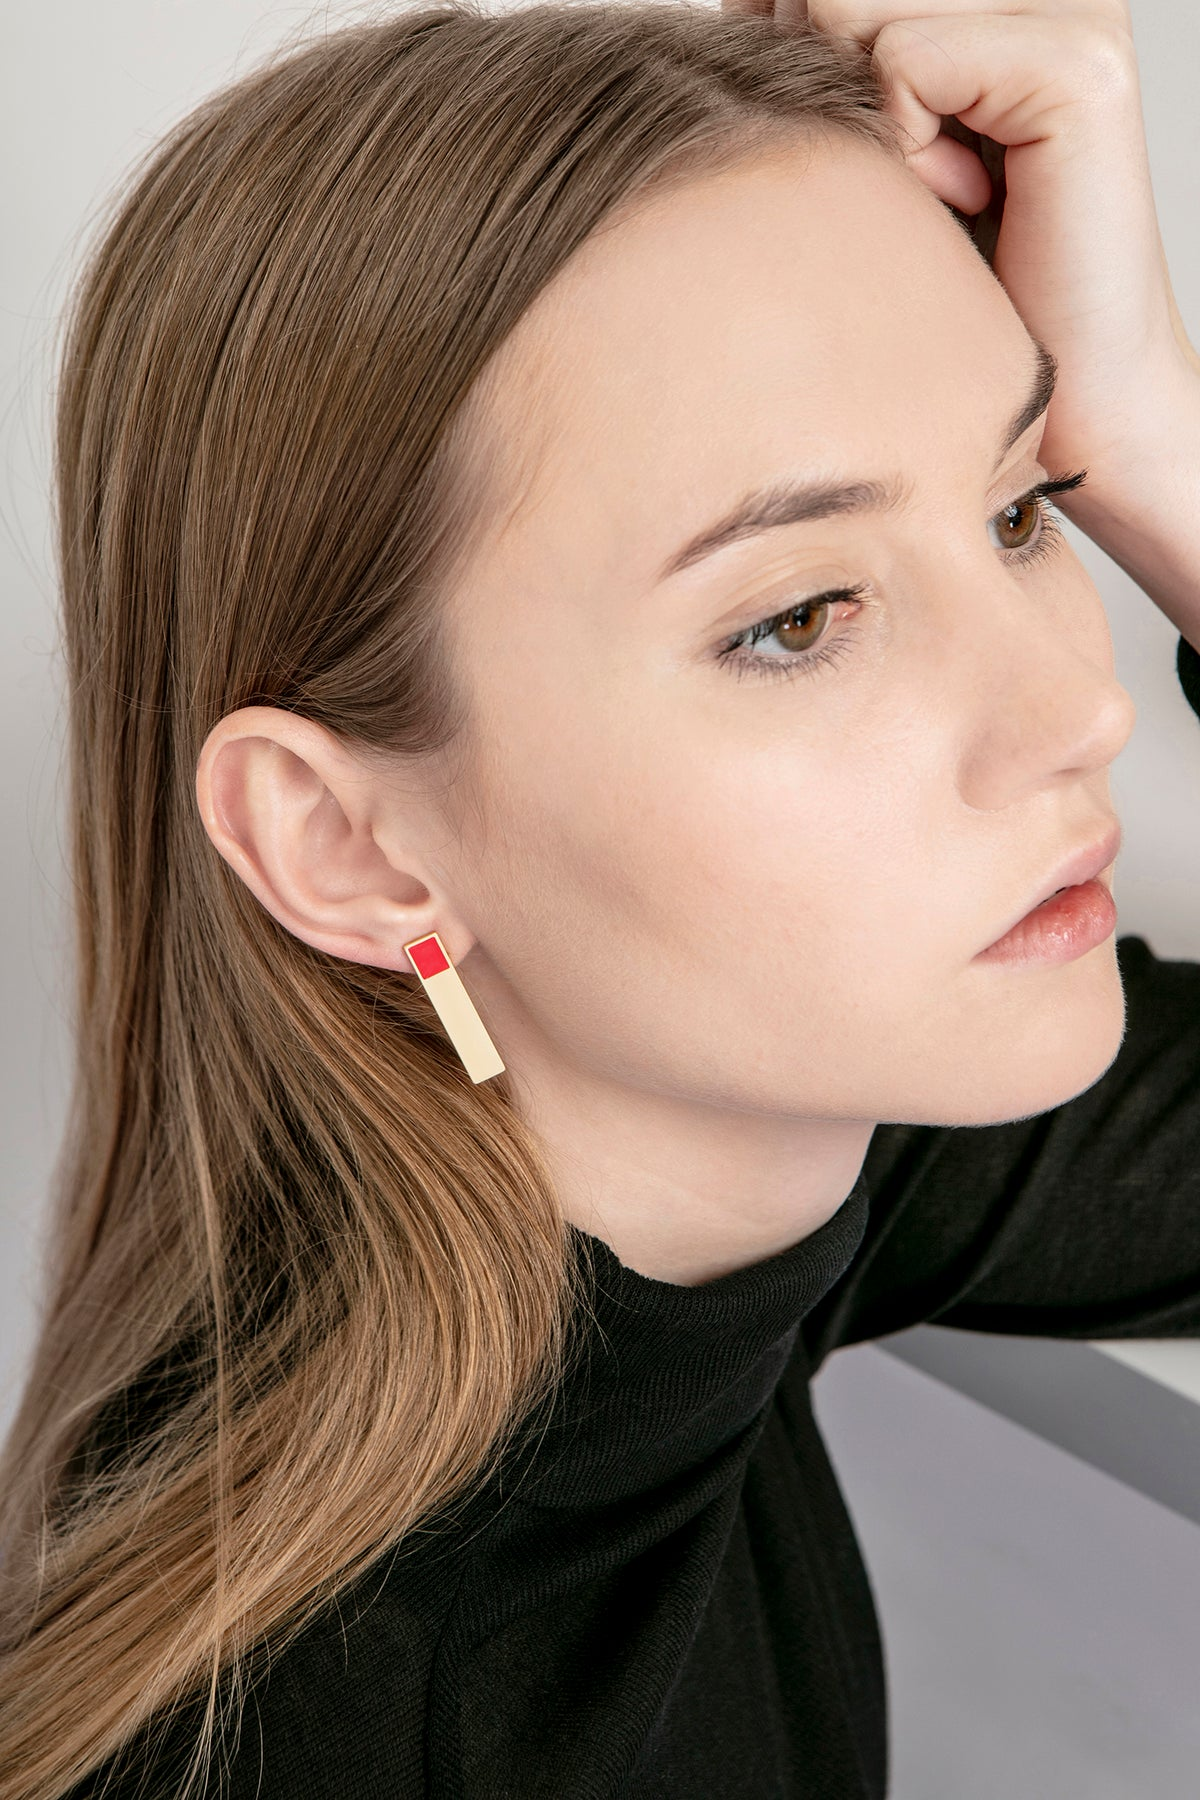 Image of Etto Earrings • Stainless steel • Silver